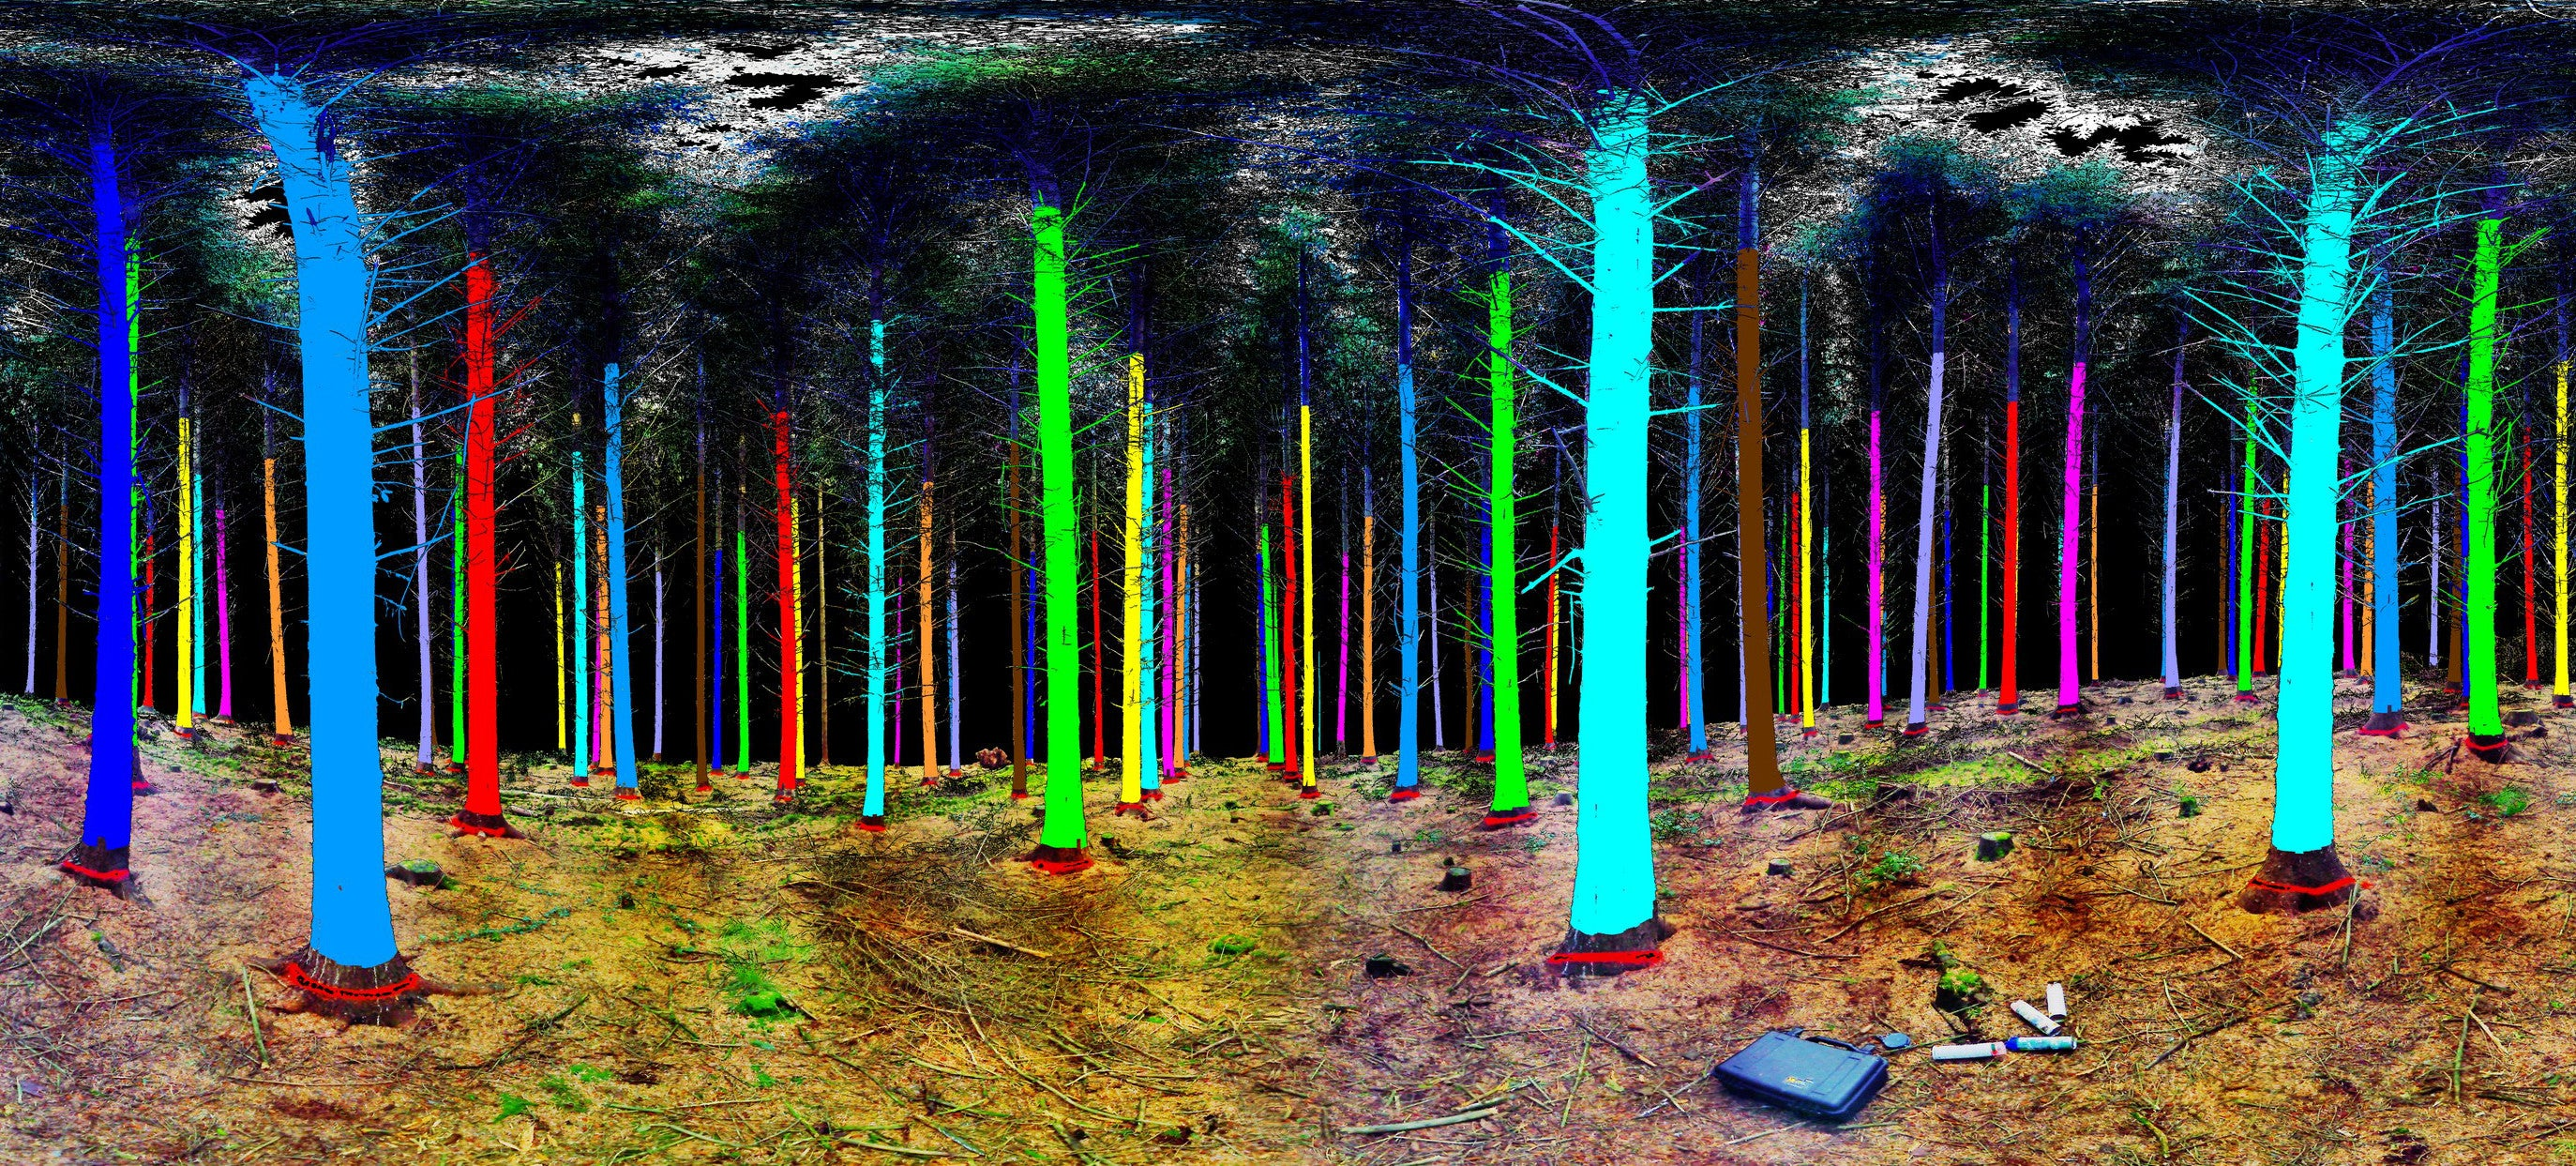 This Is What You See When You Scan a Forest With Lasers